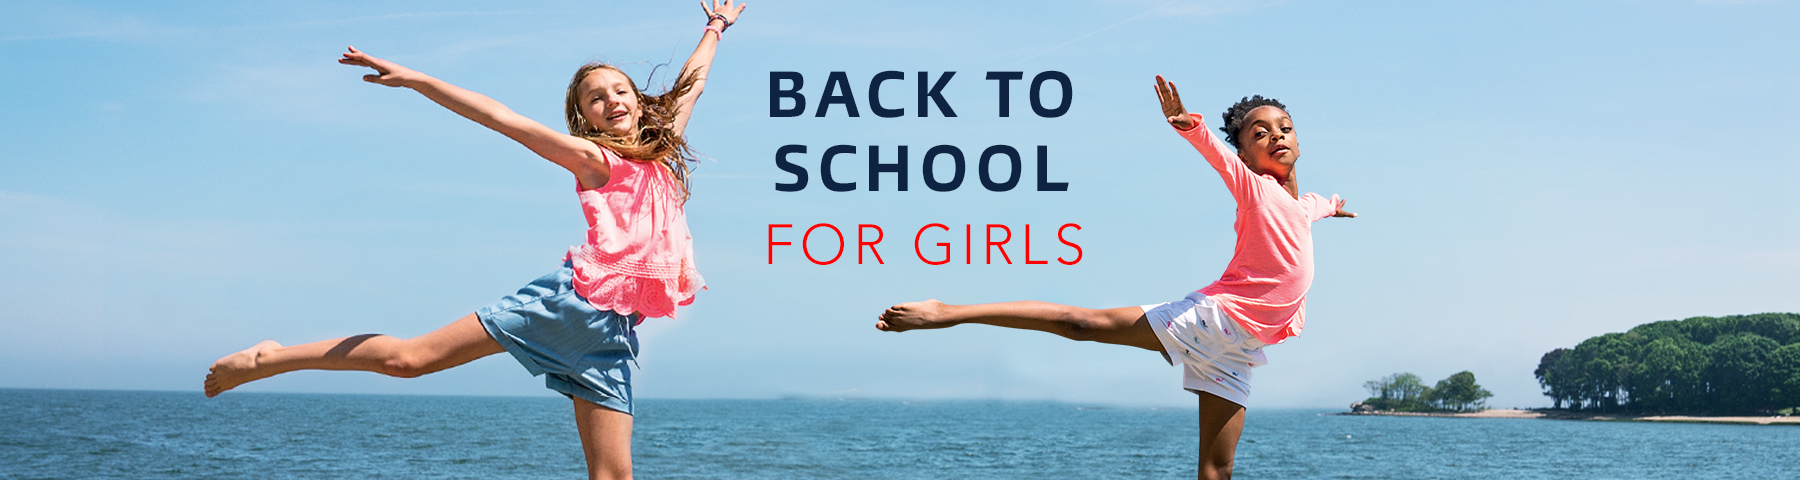 Shop Back to School For Girls.